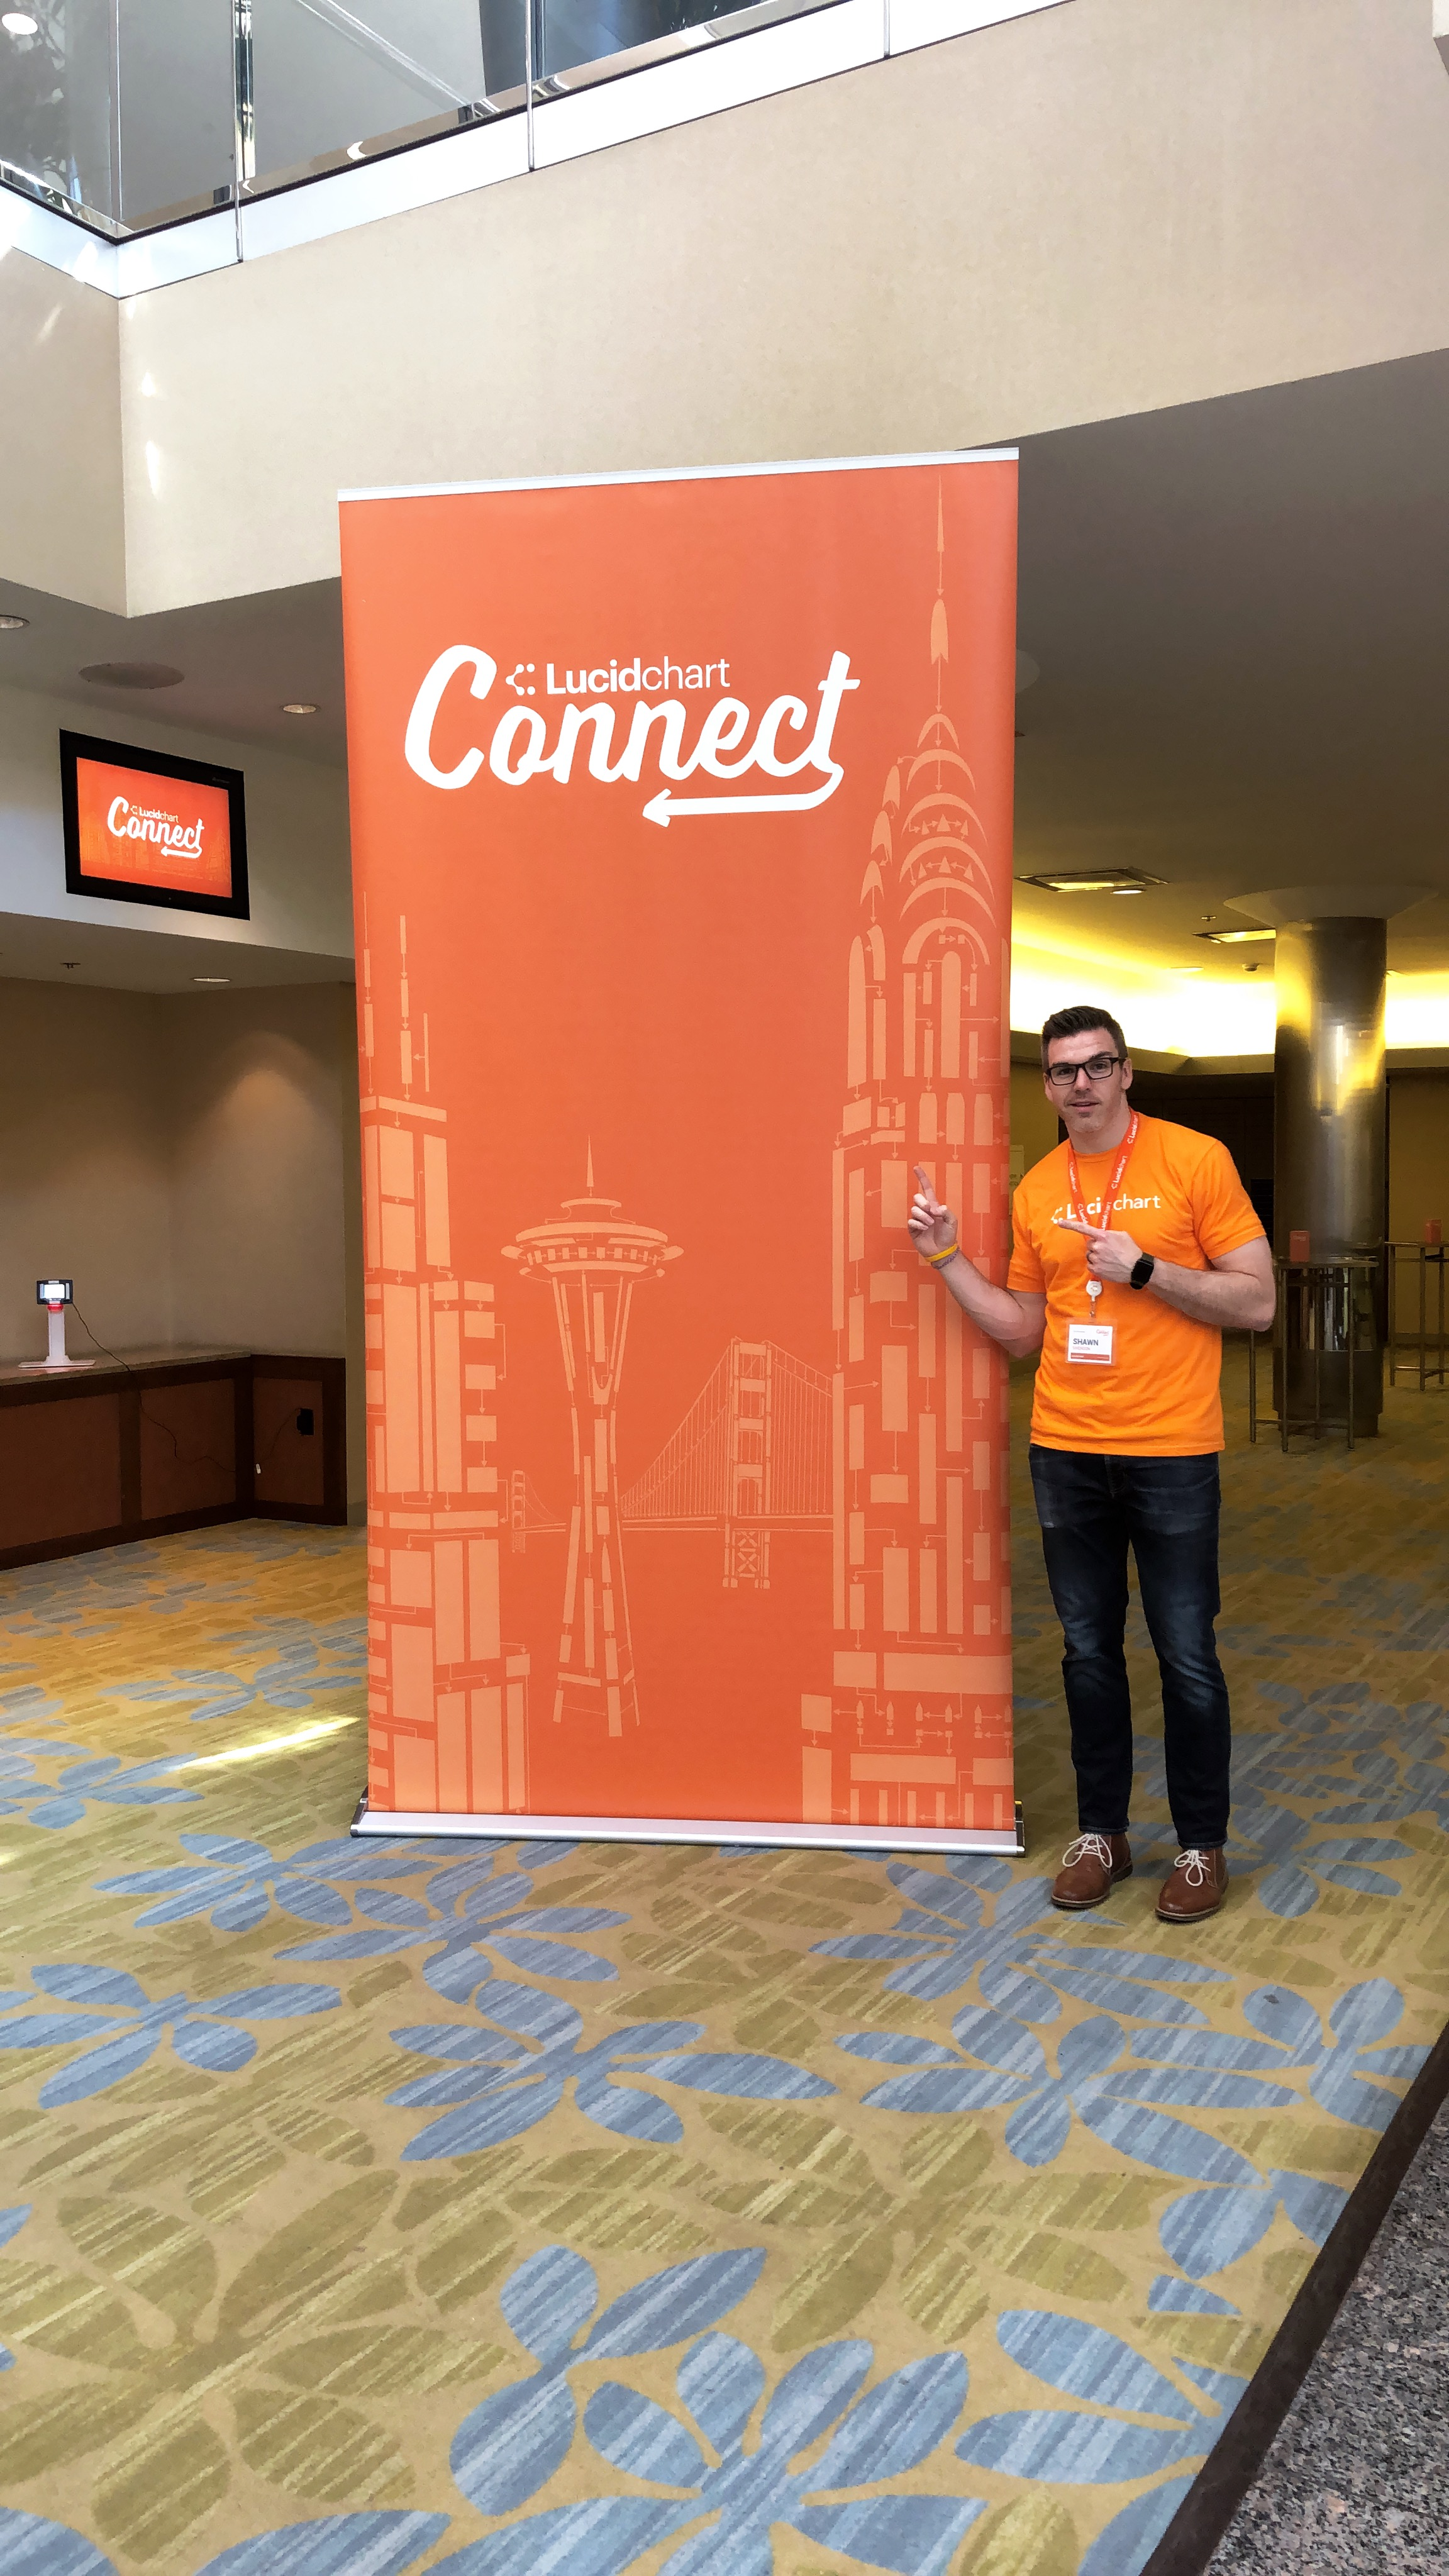 Shawn Swenson at Lucidchart Connect